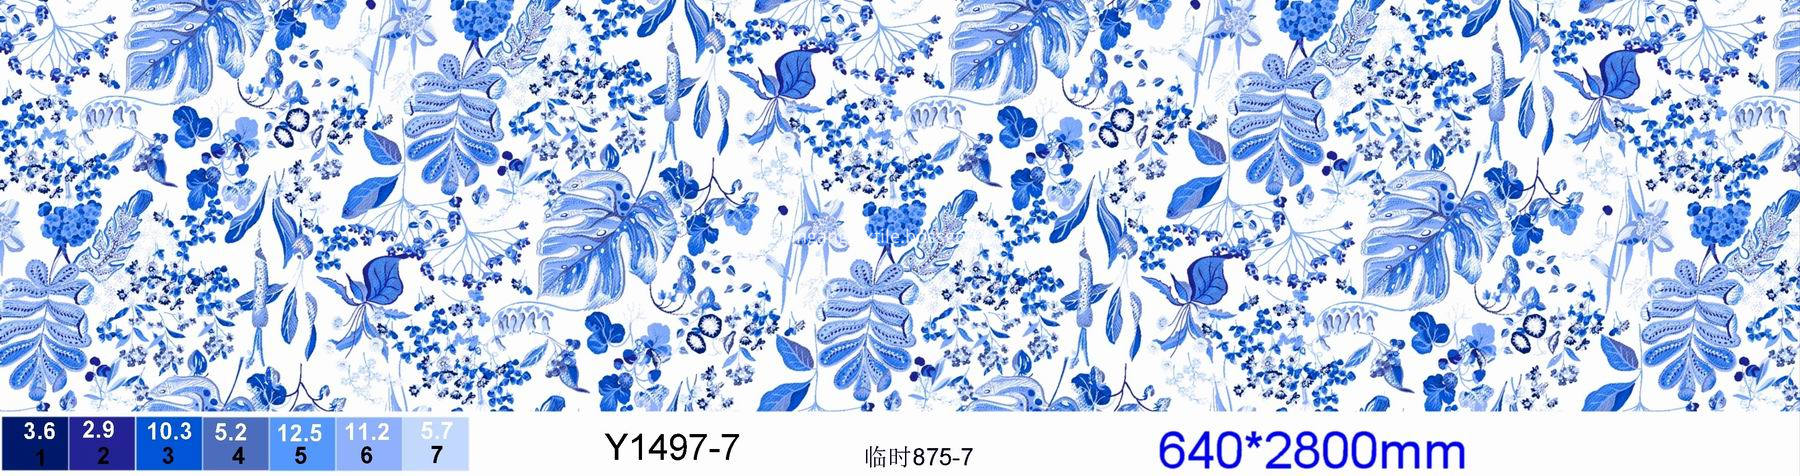 XINGANG BEDDING FABRIC (31)